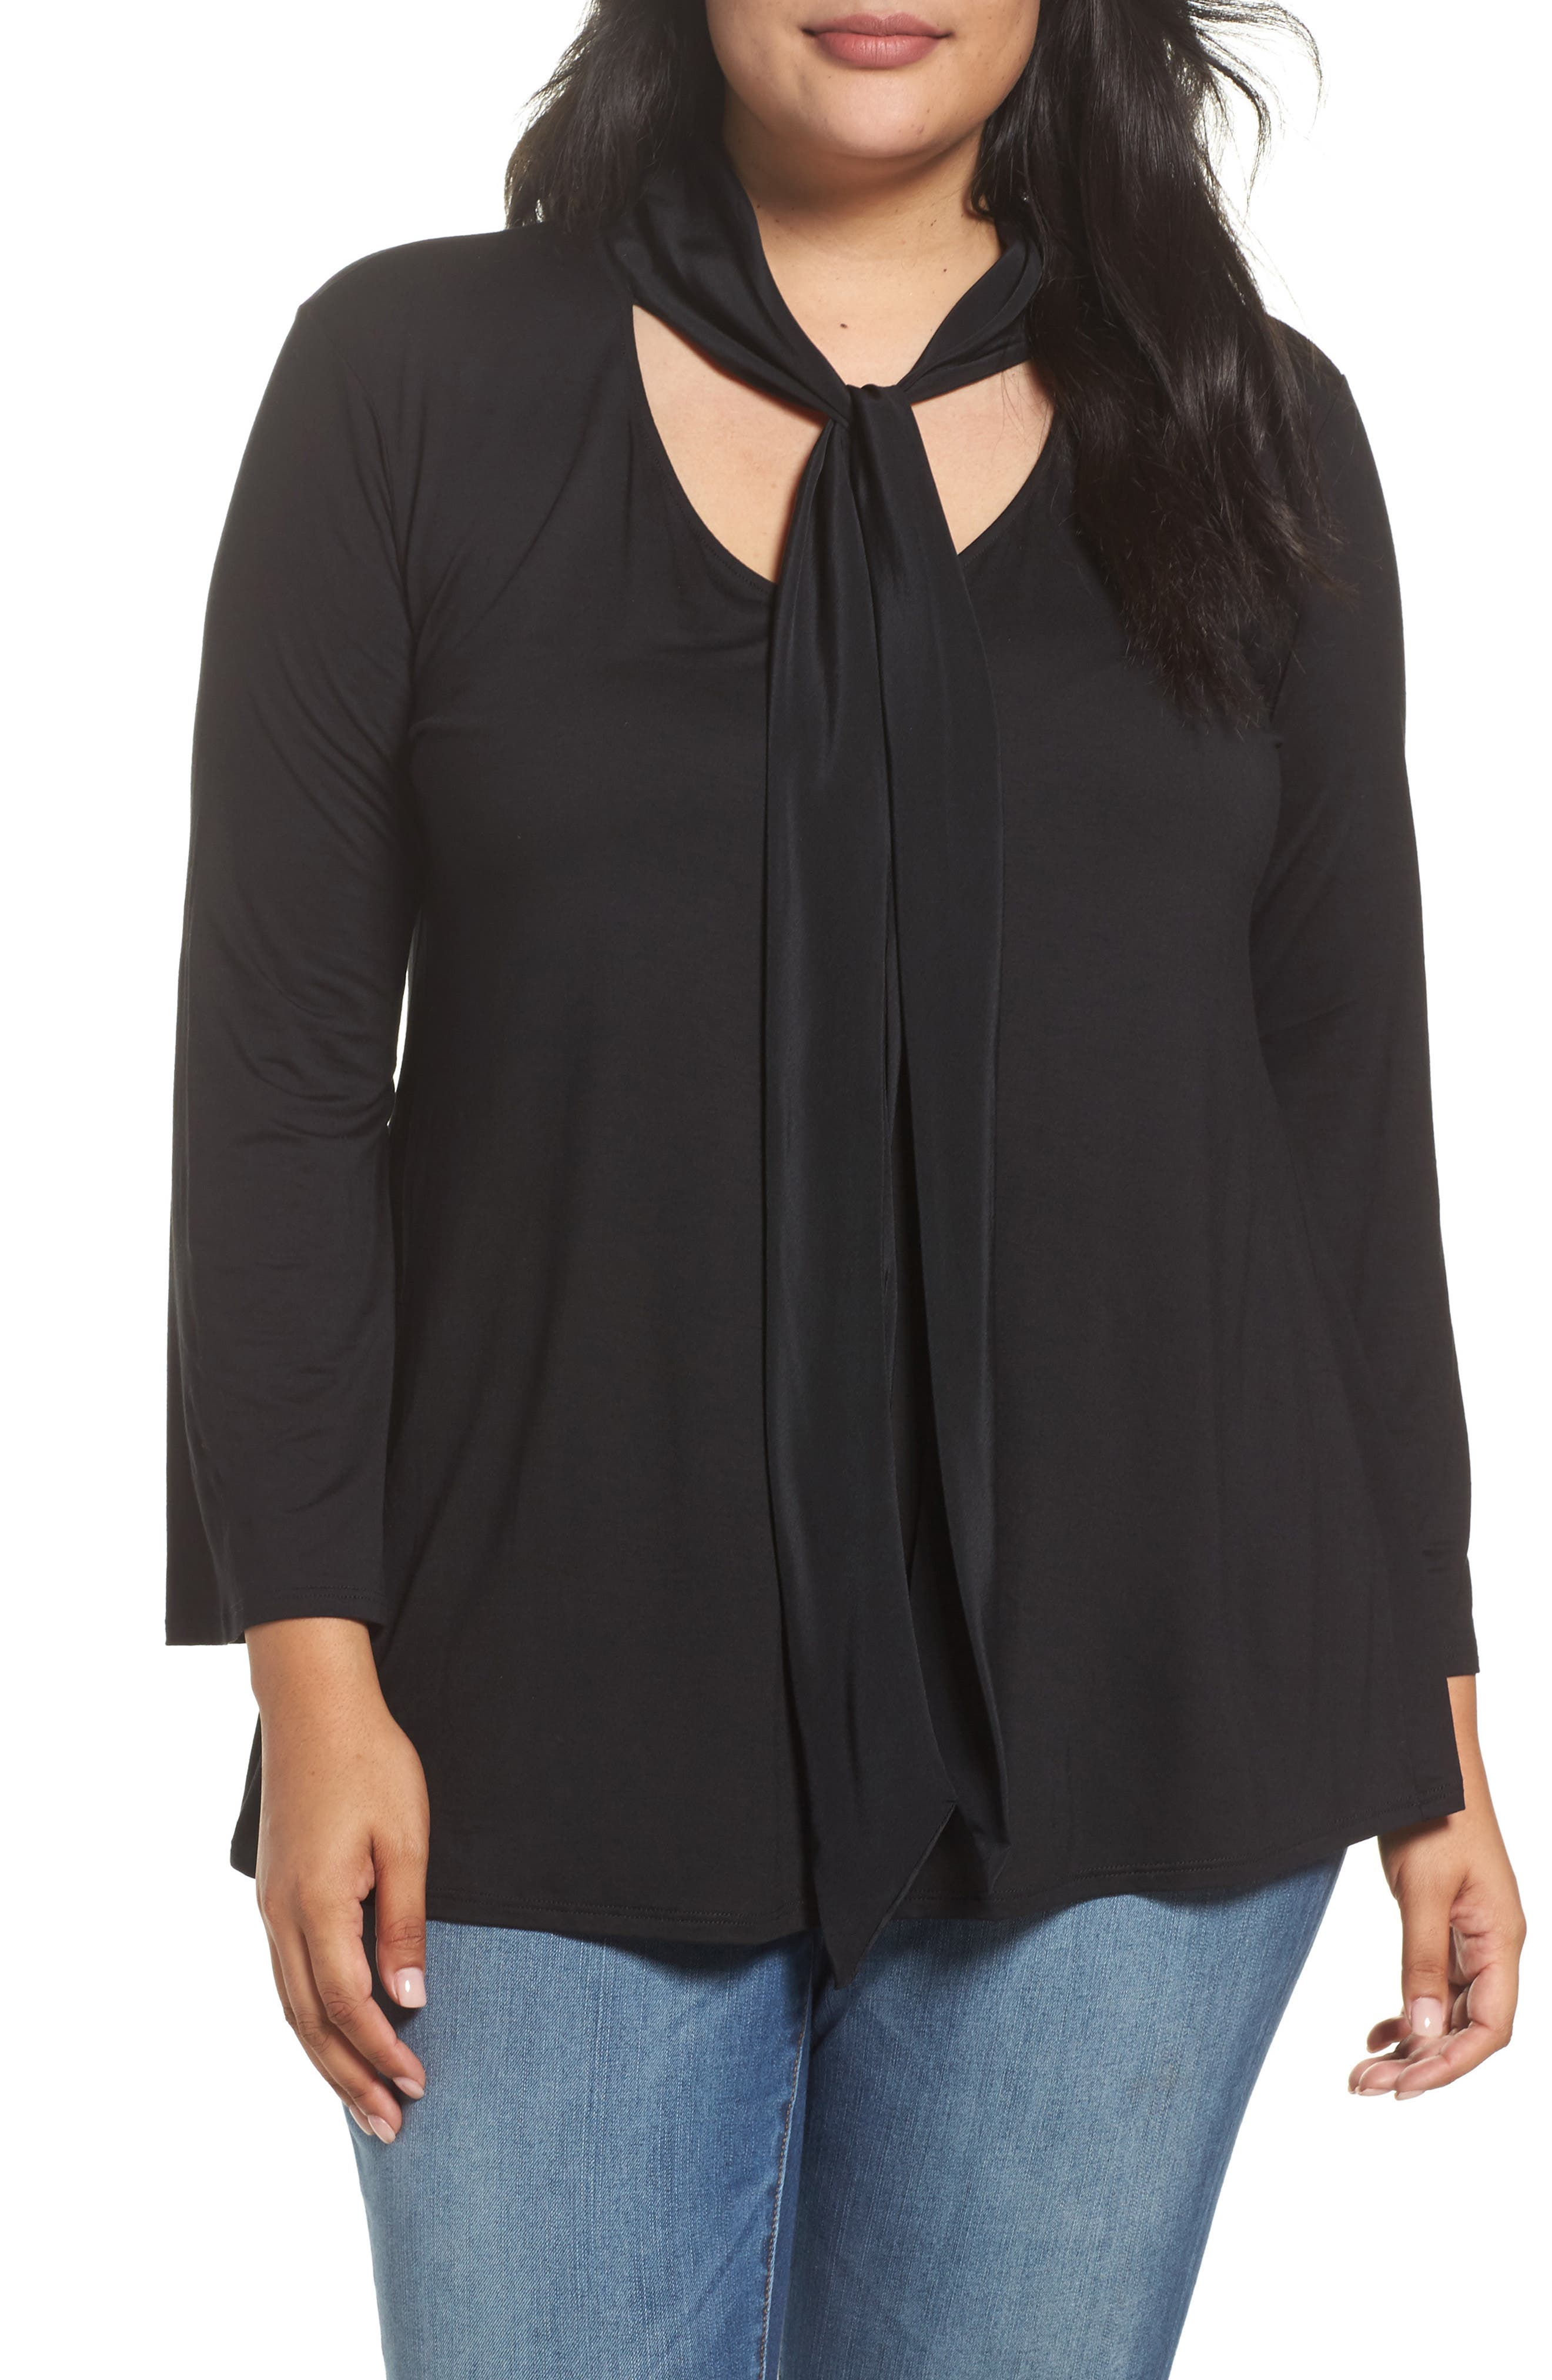 Alternate Image 1 Selected - Three Dots Tie Neck Jersey Top (Plus Size)